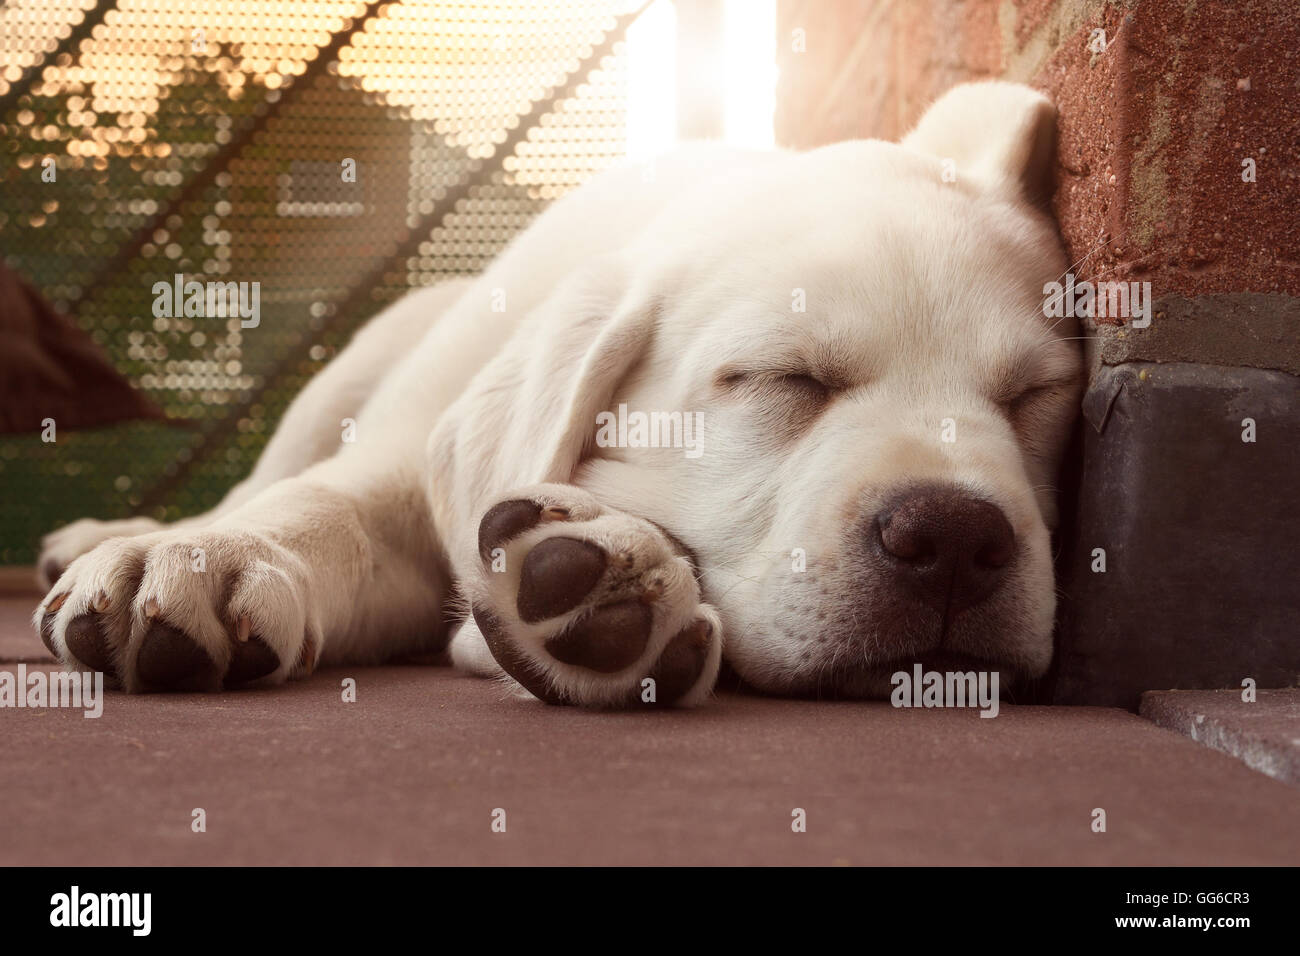 Sleeping Labrador puppy leaning on a wall at sunset - Beautiful Dog - Stock Image